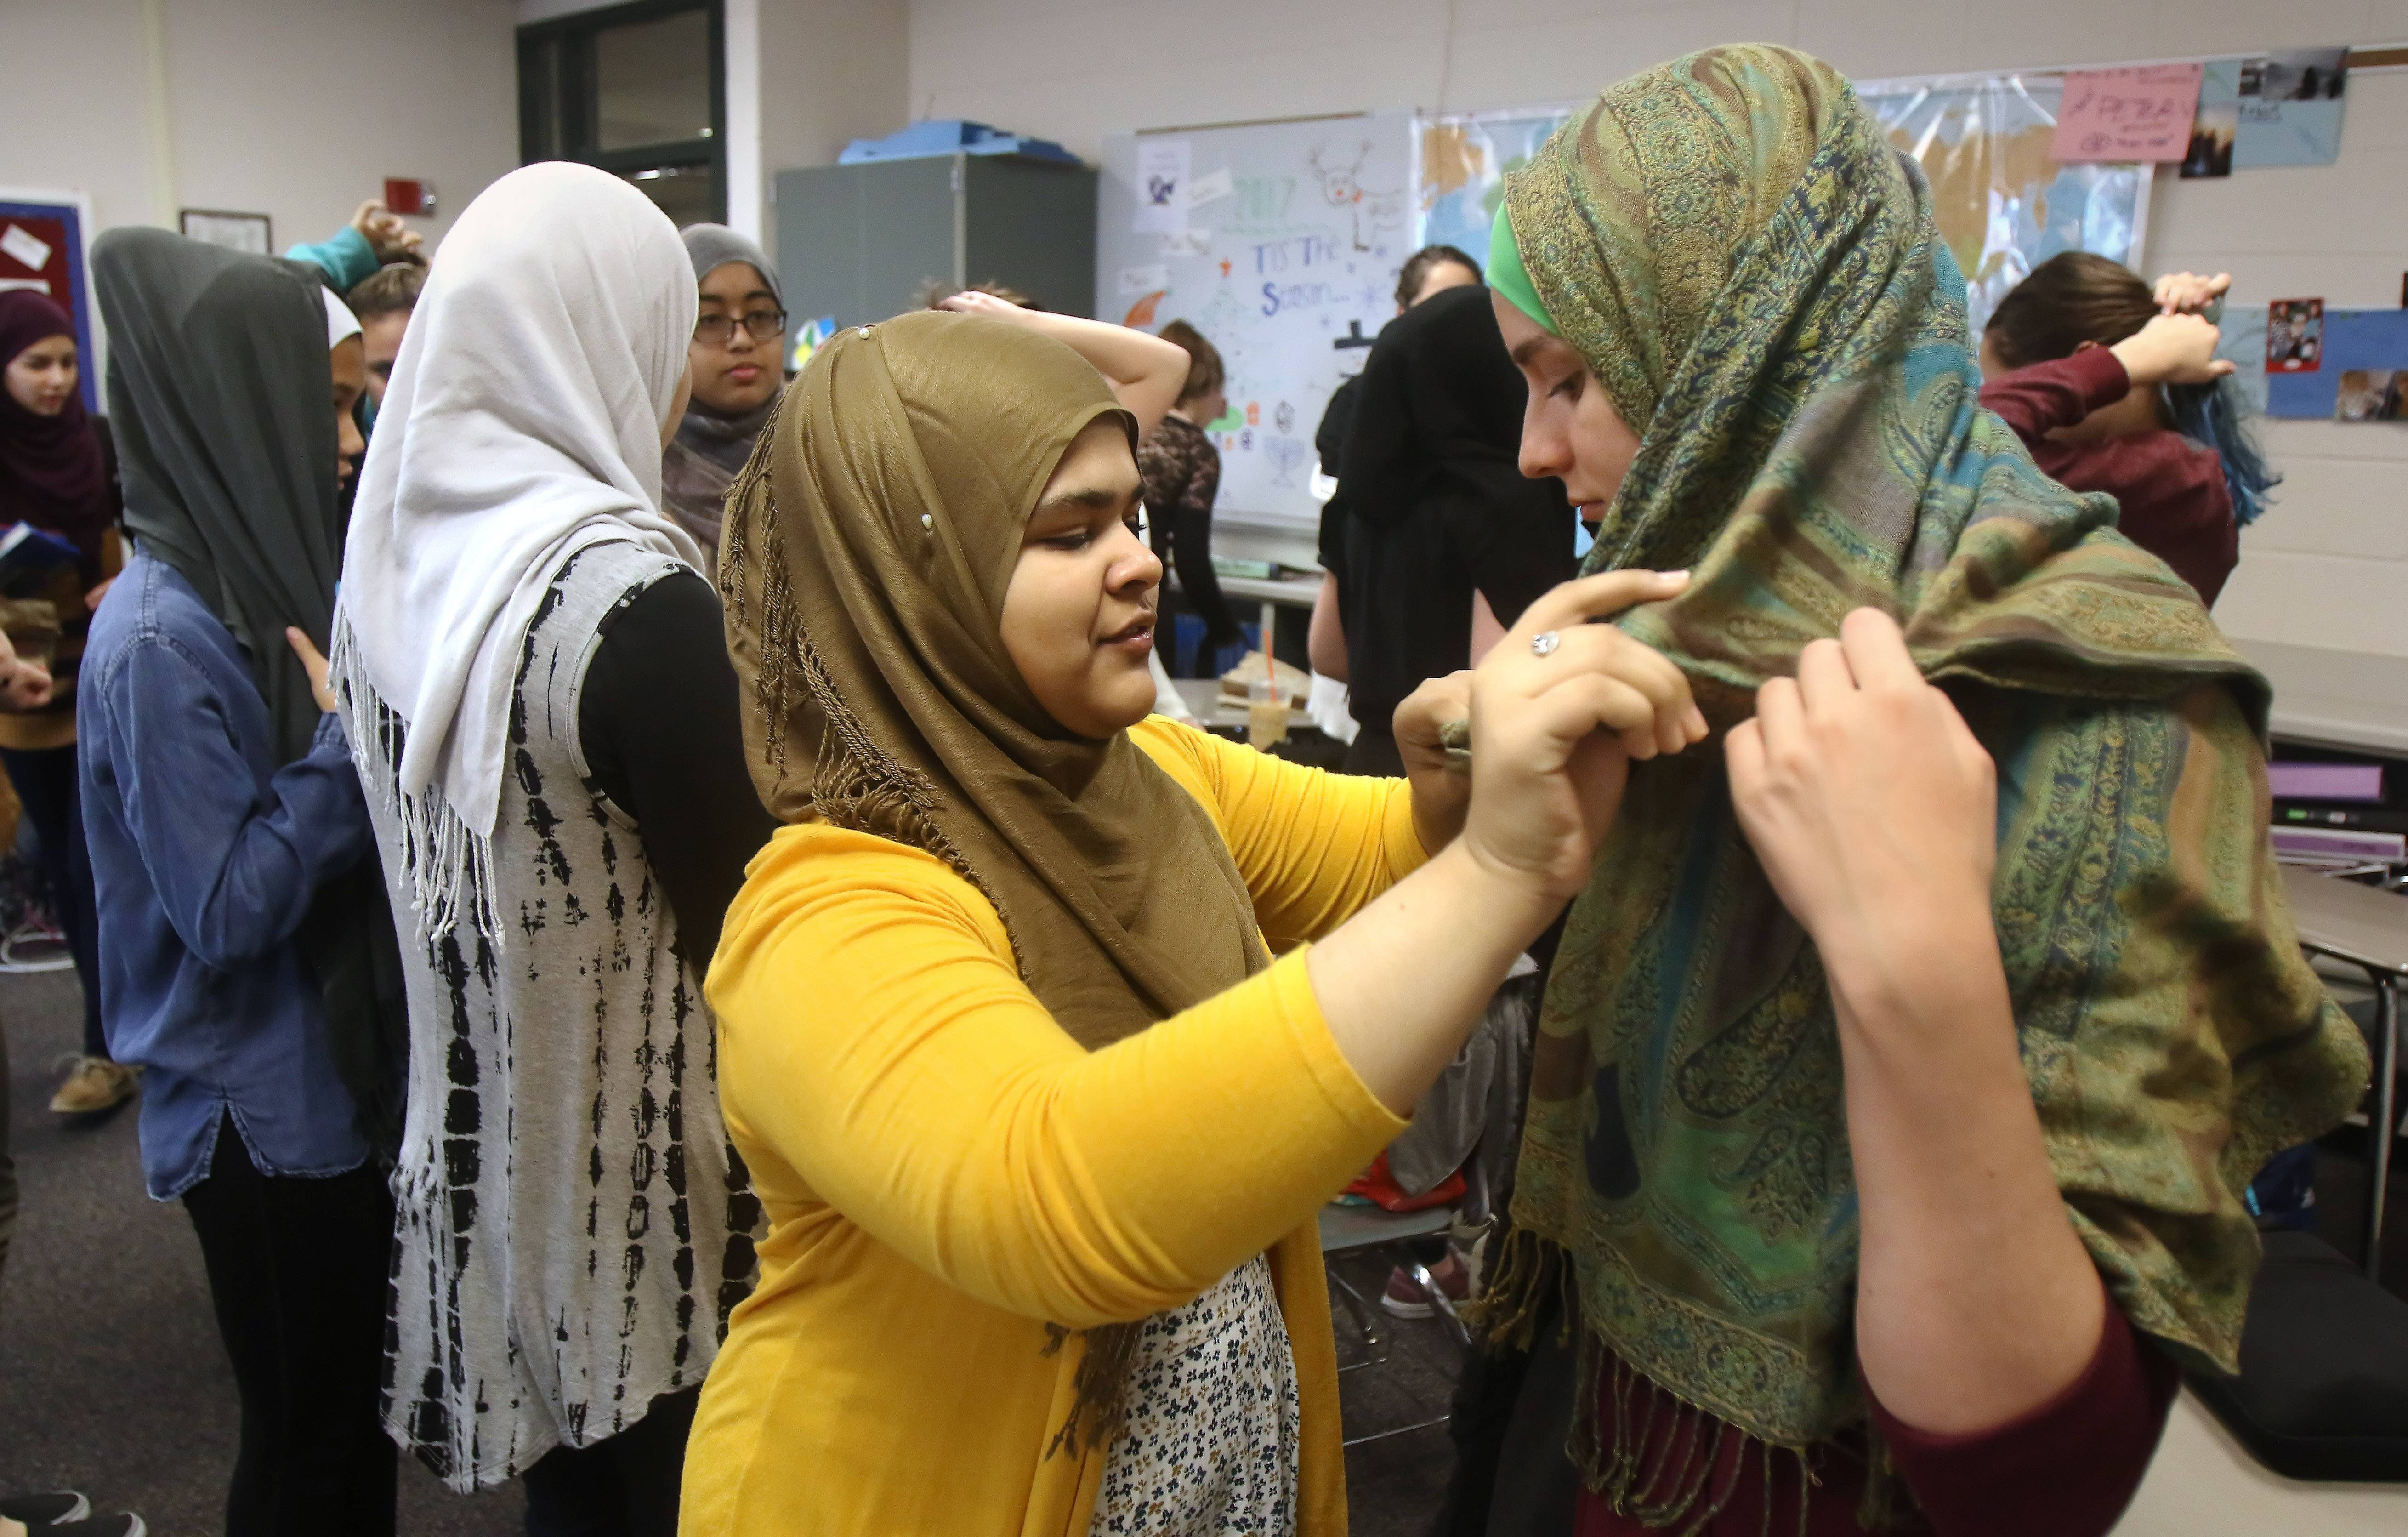 Vernon Hills High School hijab video strikes a chord